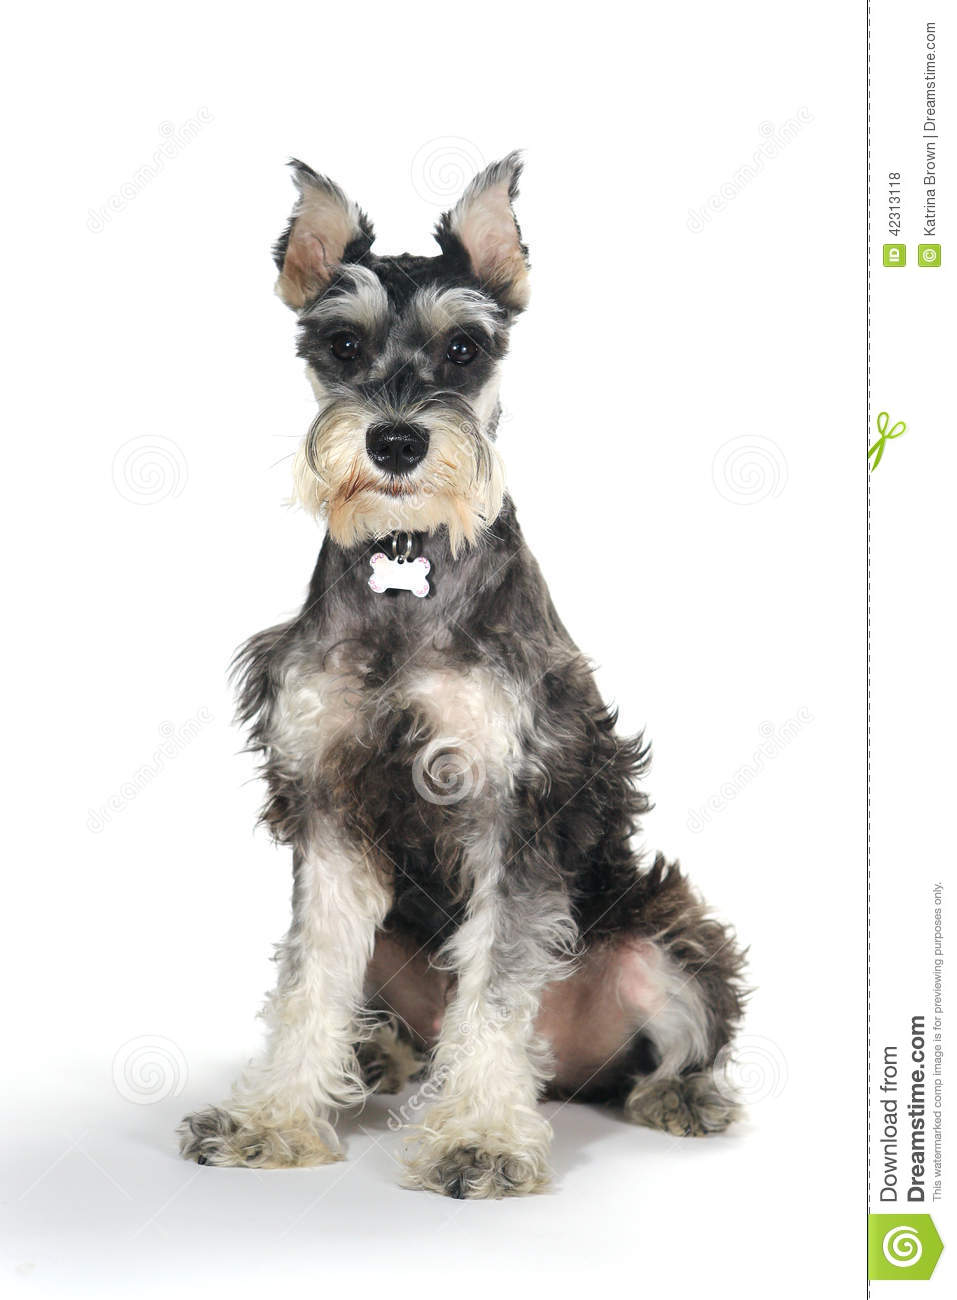 Cute Miniature Schnauzer Puppy Dog On White Background Stock Photo